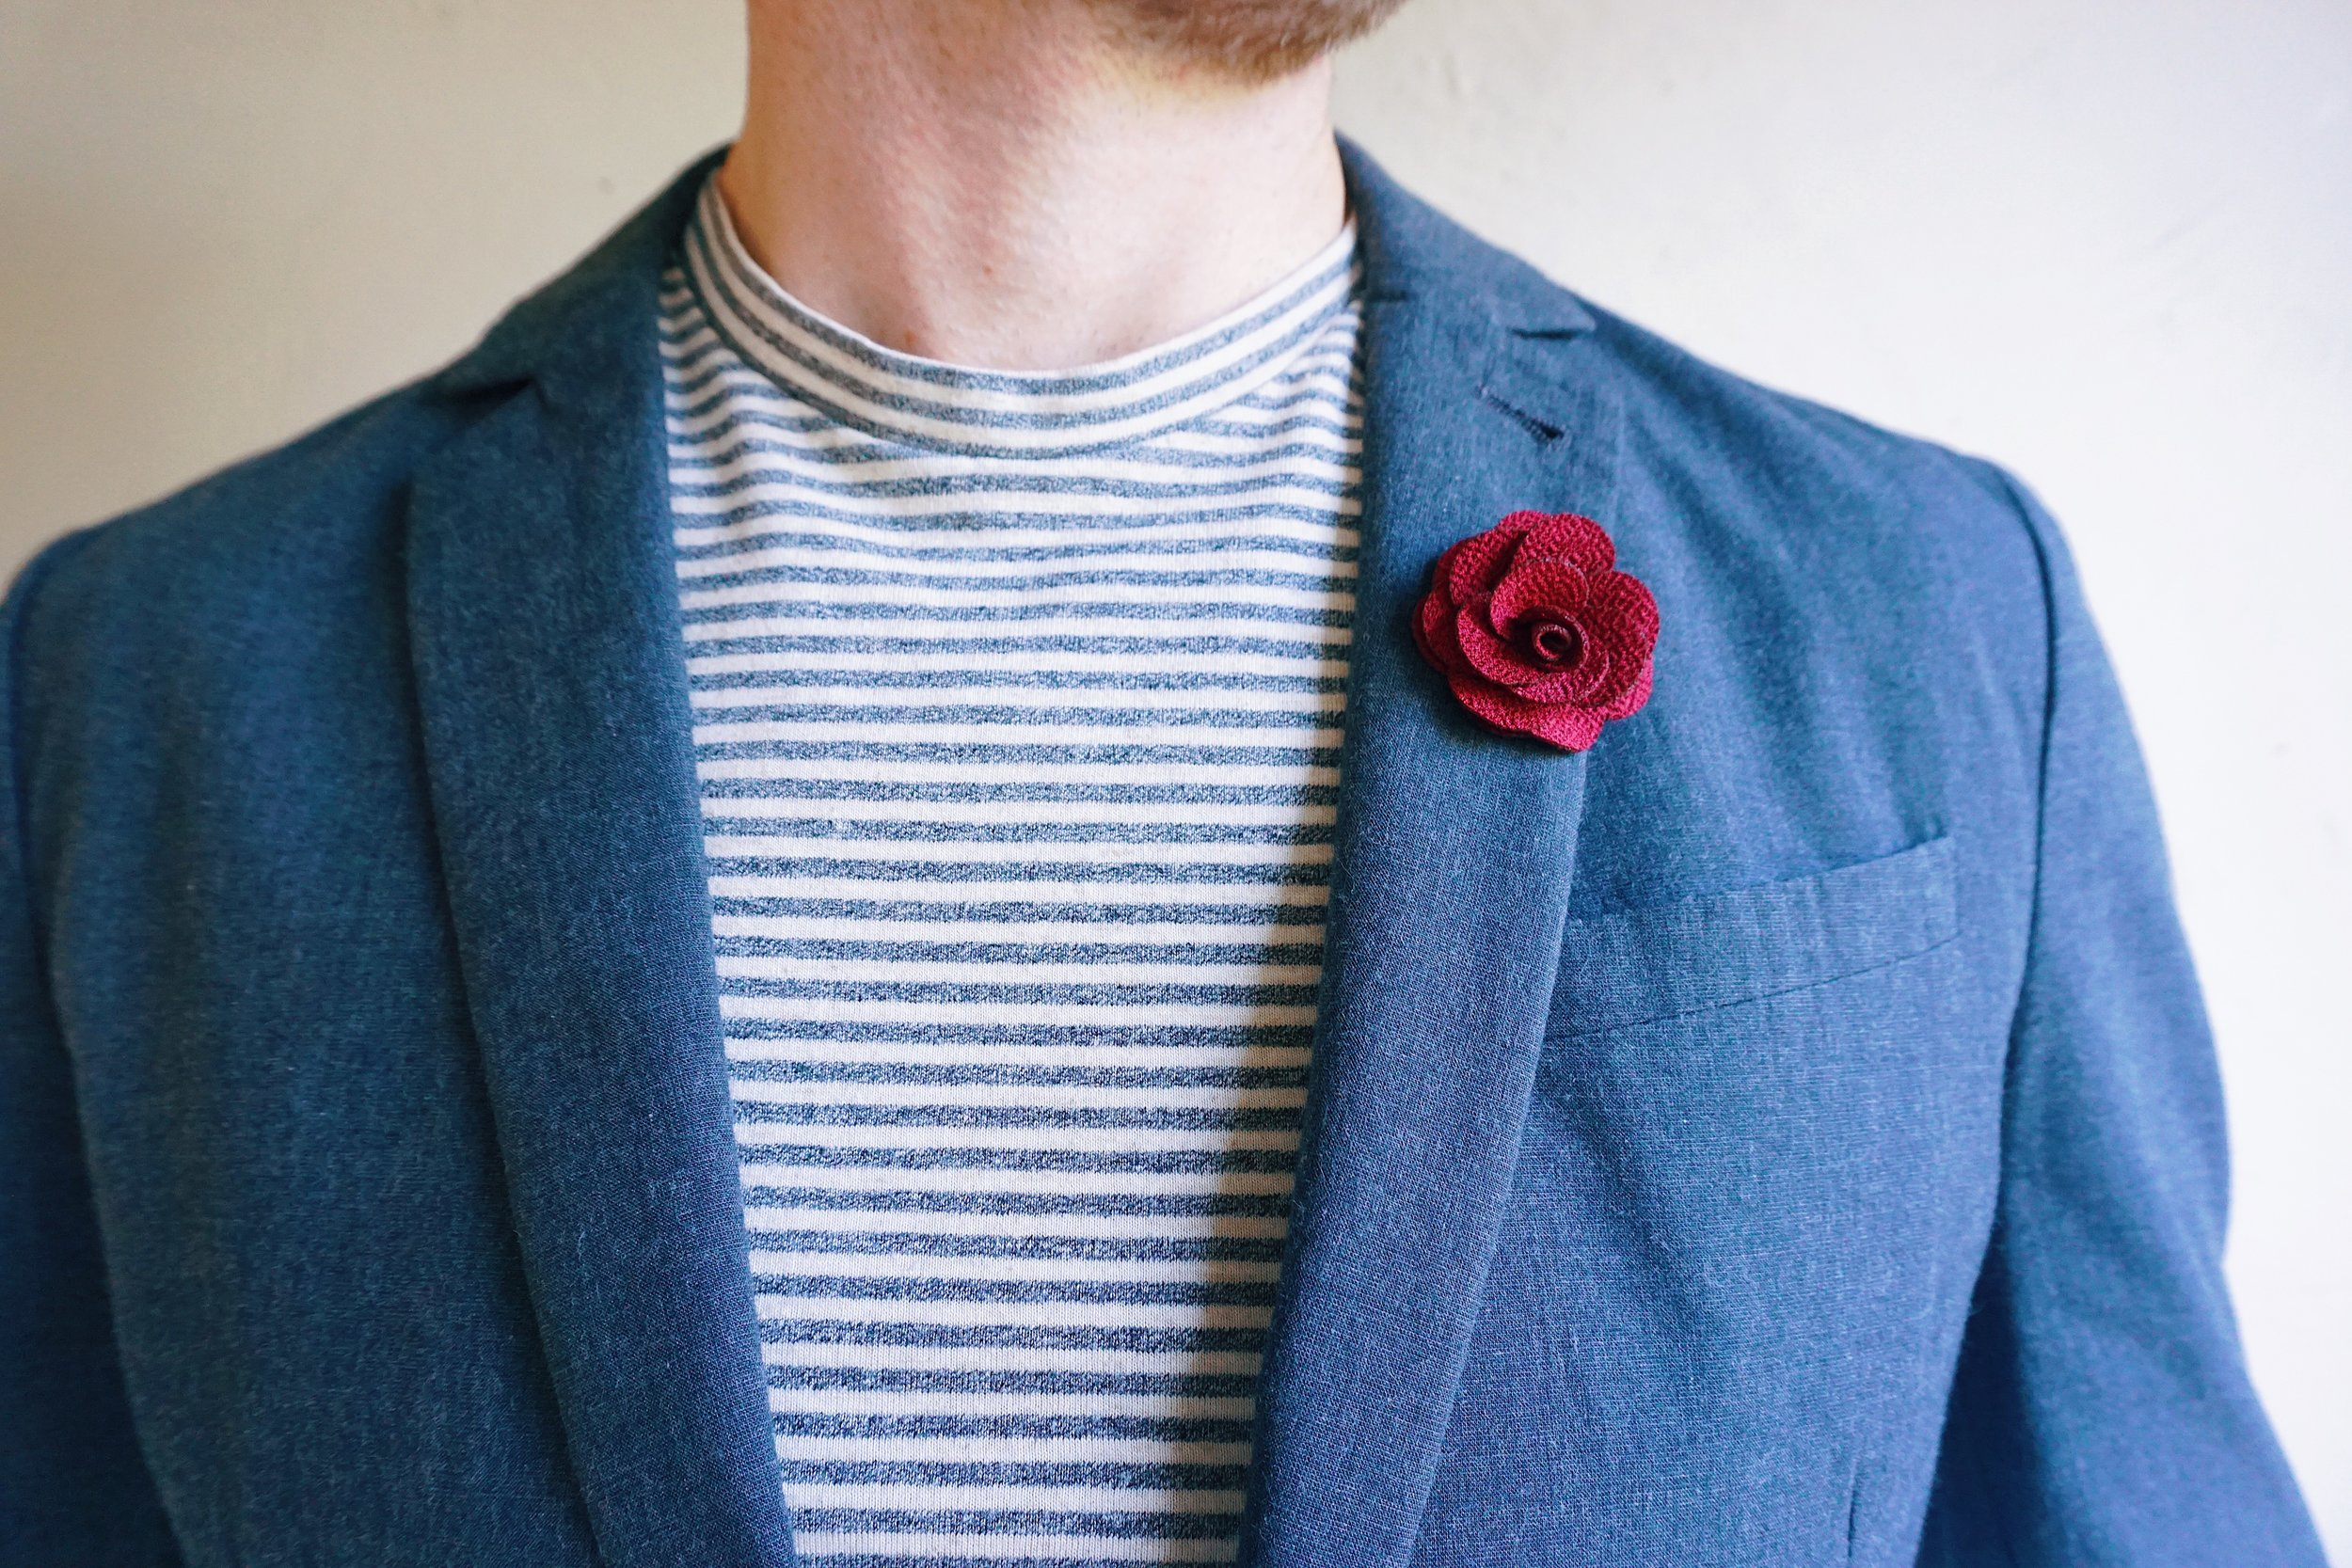 Gentlemen's Lapel Pin & Casual Friday Inspiration